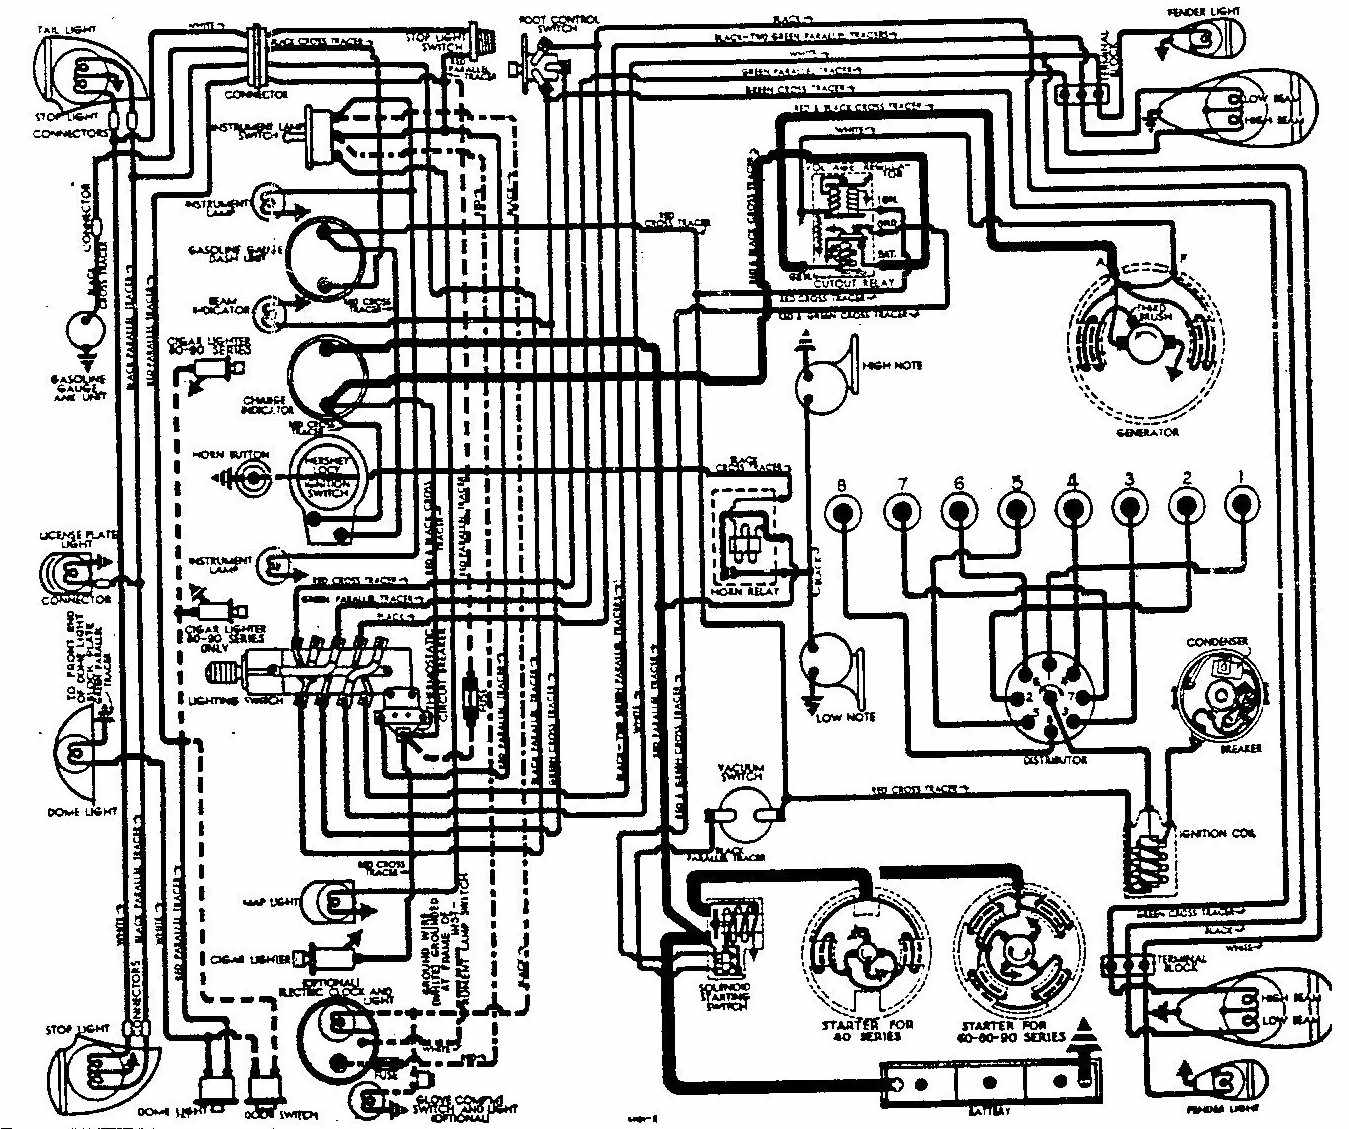 ford 4600 diesel tractor wiring schematic best wiring library Vintage Kmart Bench Grinder Wiring buick roadmaster 1938 electrical wiring diagram new holland 3930 wiring diagram